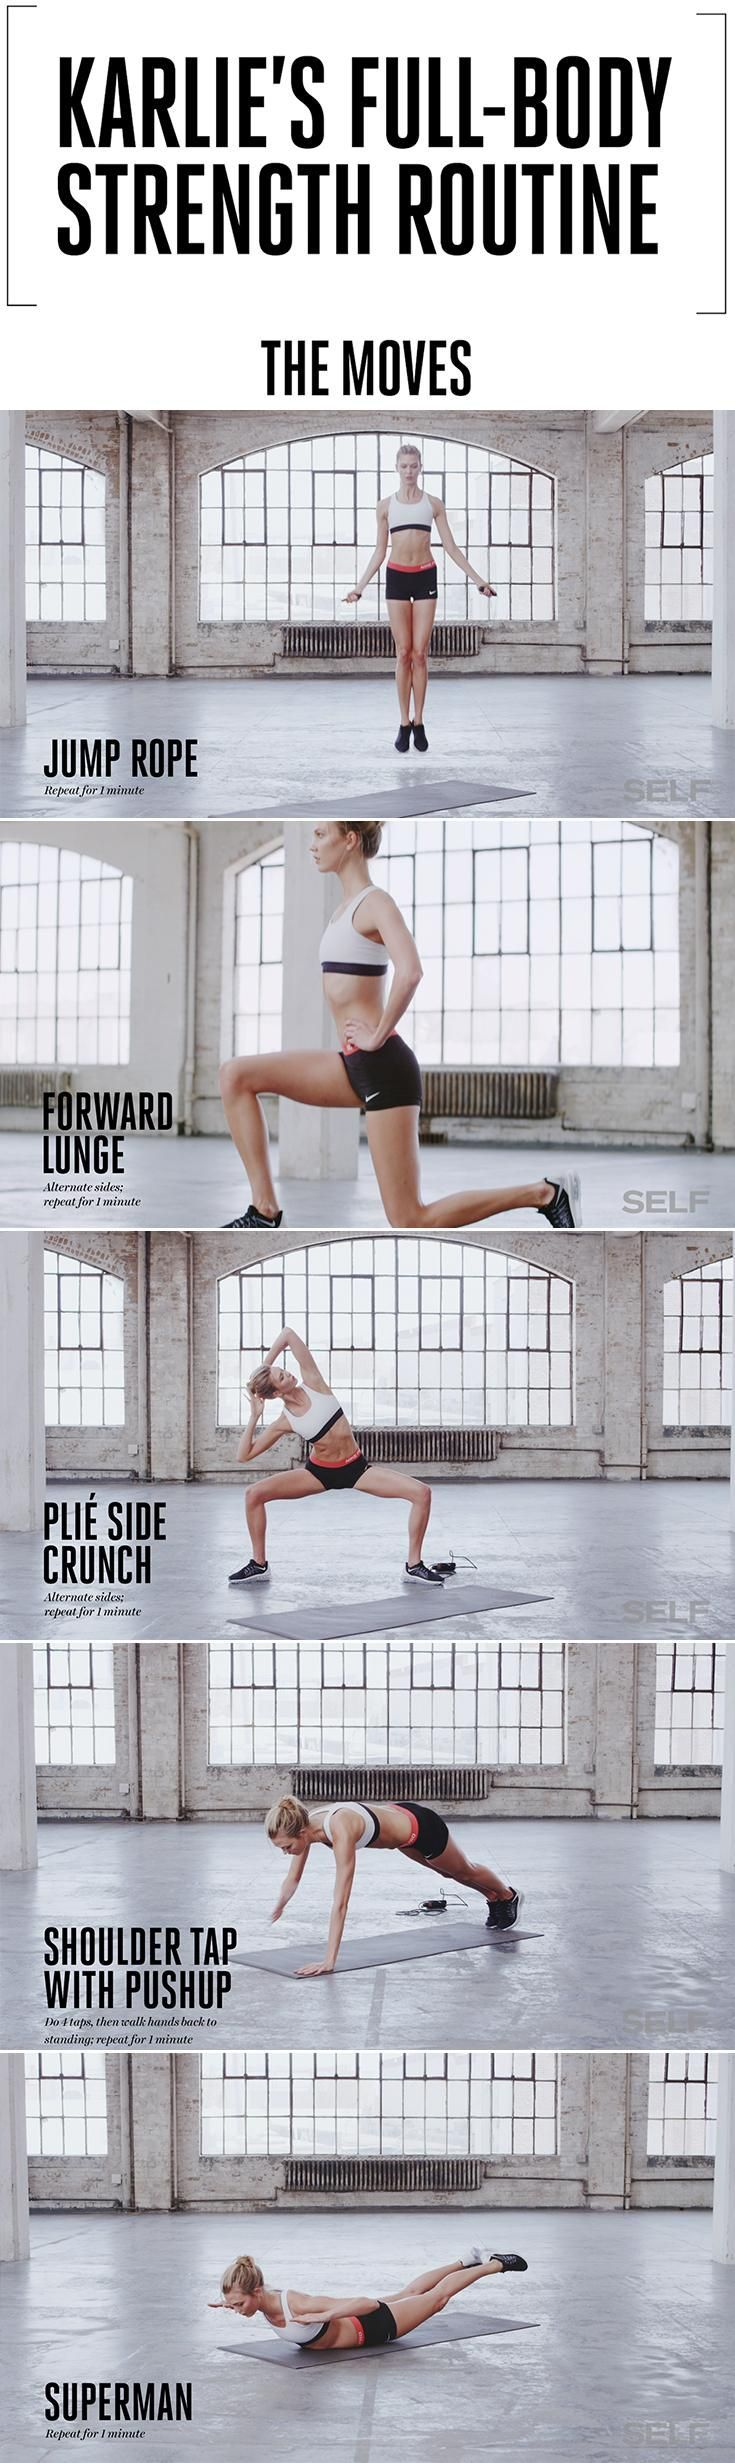 Work Out With Karlie Kloss Exclusive videos to get fit alongside the supermodel.